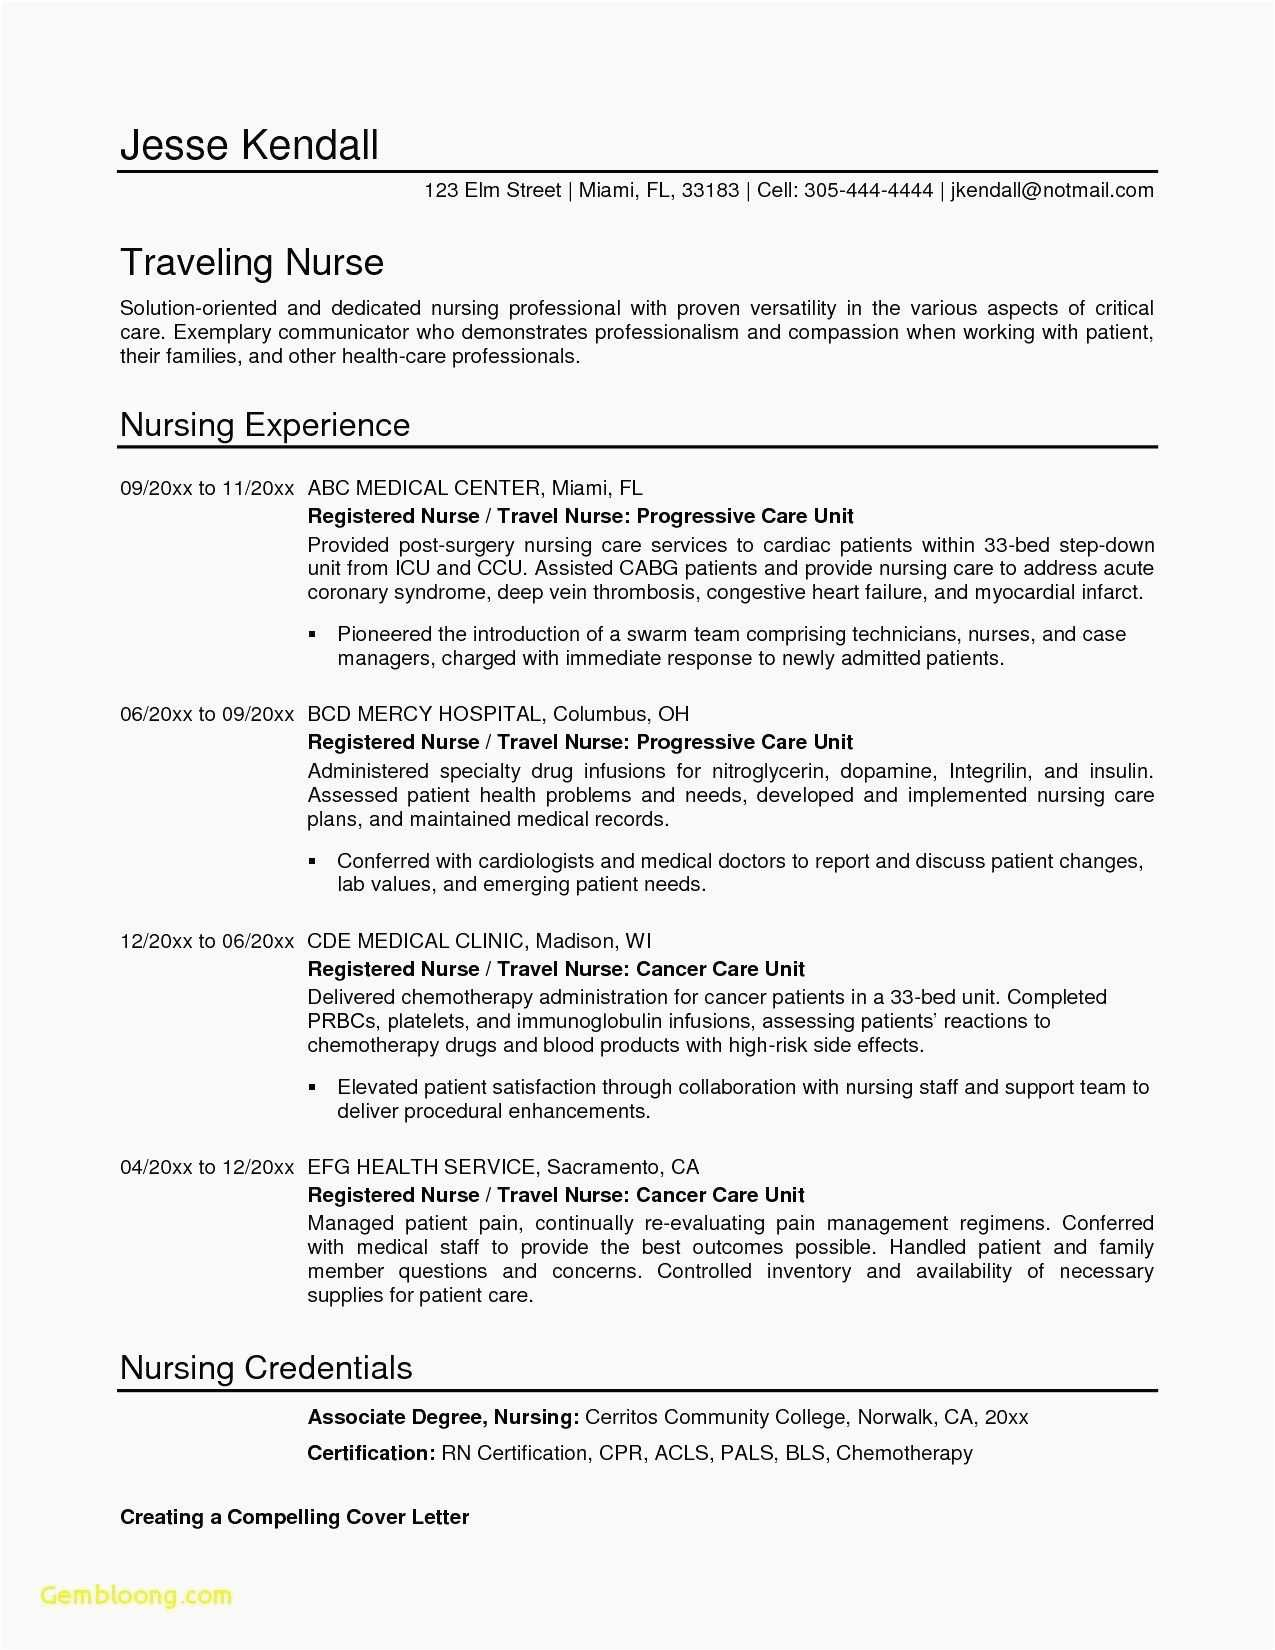 Open Office Resume Template Download - Baseball Template Free Download Heart Template for Printing Free